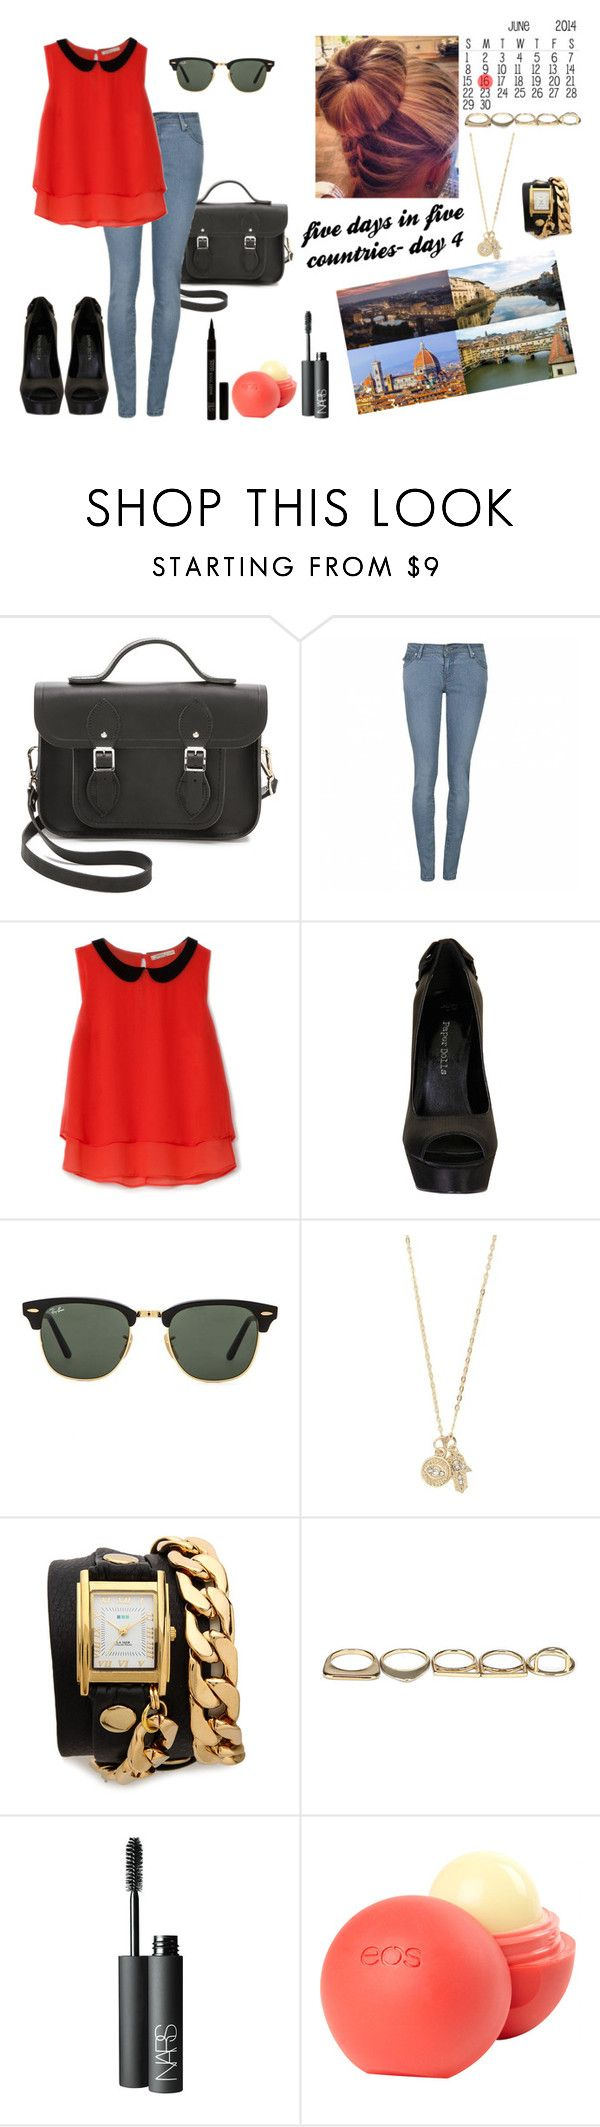 travel in Italy - #4 by simaoana on Polyvore featuring beauty, NARS Cosmetics, dELiA*s, Ray-Ban, With Love From CA, La Mer, Sole Society, The Cambridge Satchel Company, Bershka and Ally Fashion